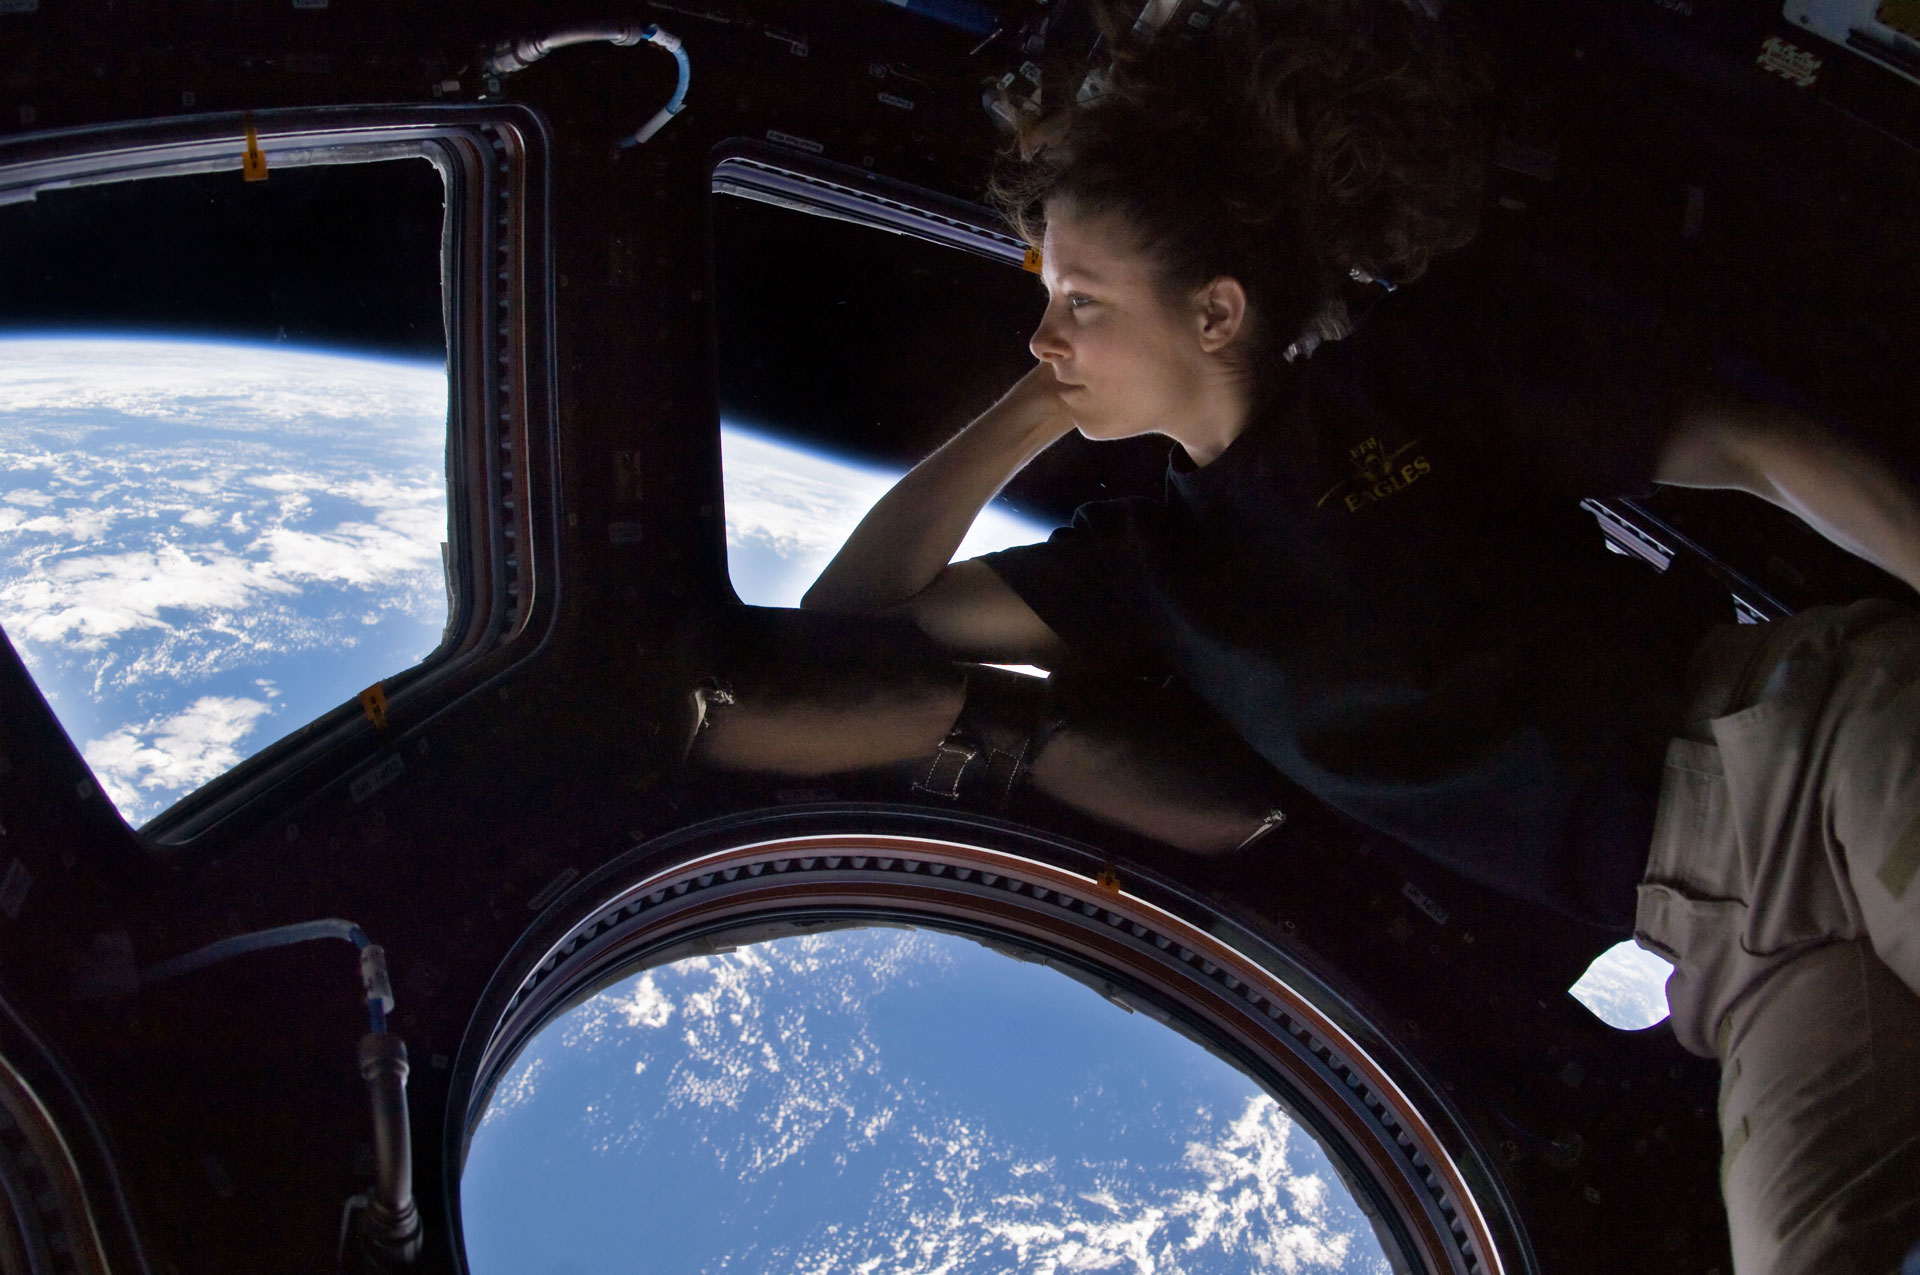 Self portrait of Tracy Caldwell Dyson in the Cupola module of the International Space Station observing the Earth below during Expedition 24. Image from NASA website - click image to be taken to original source and copyright information.